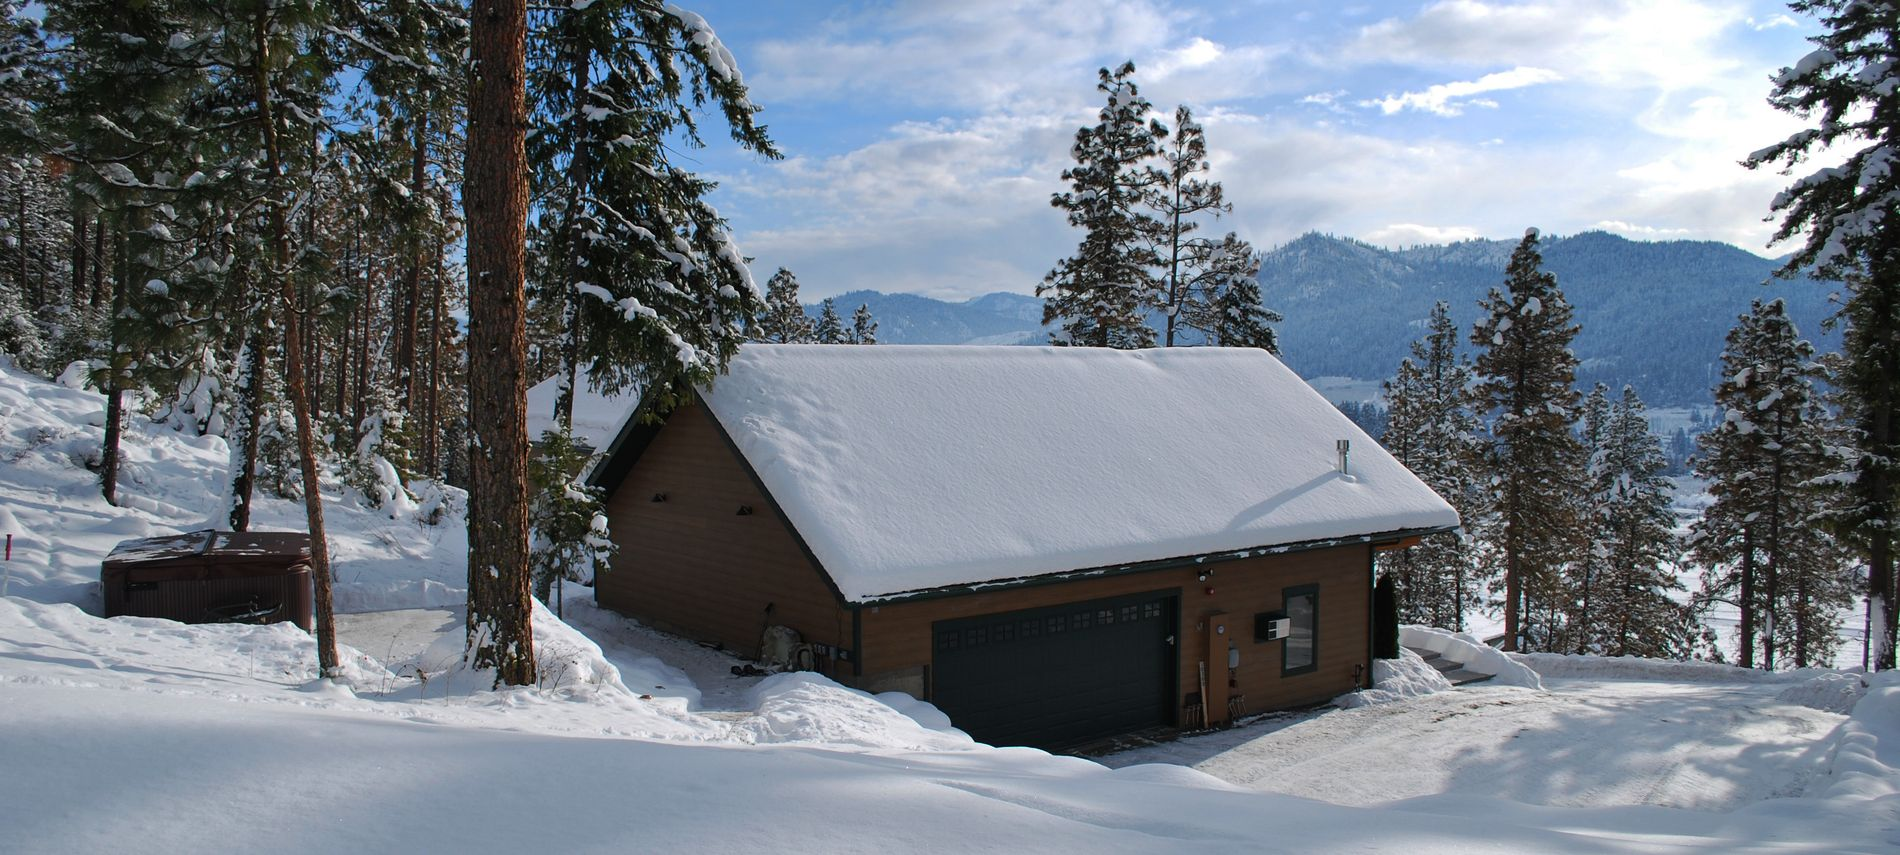 Exterior winter view of outdoor hot tub surrounded by white snow and dark blue mountains in the distance.